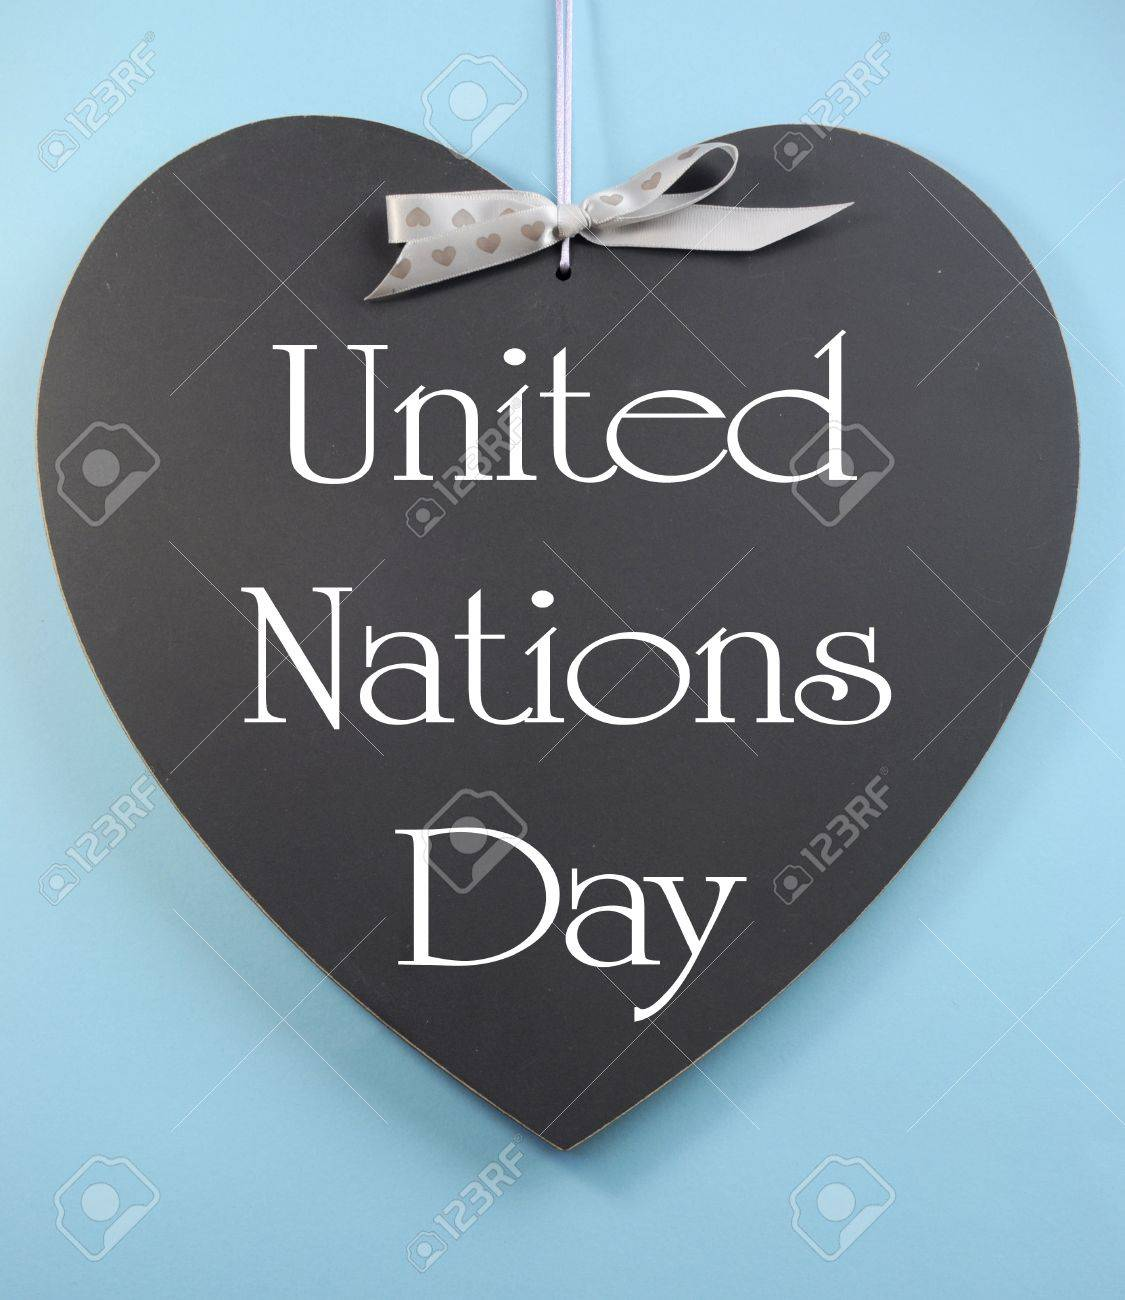 United Nations Day Text Message Greeting Written On Heart Shape